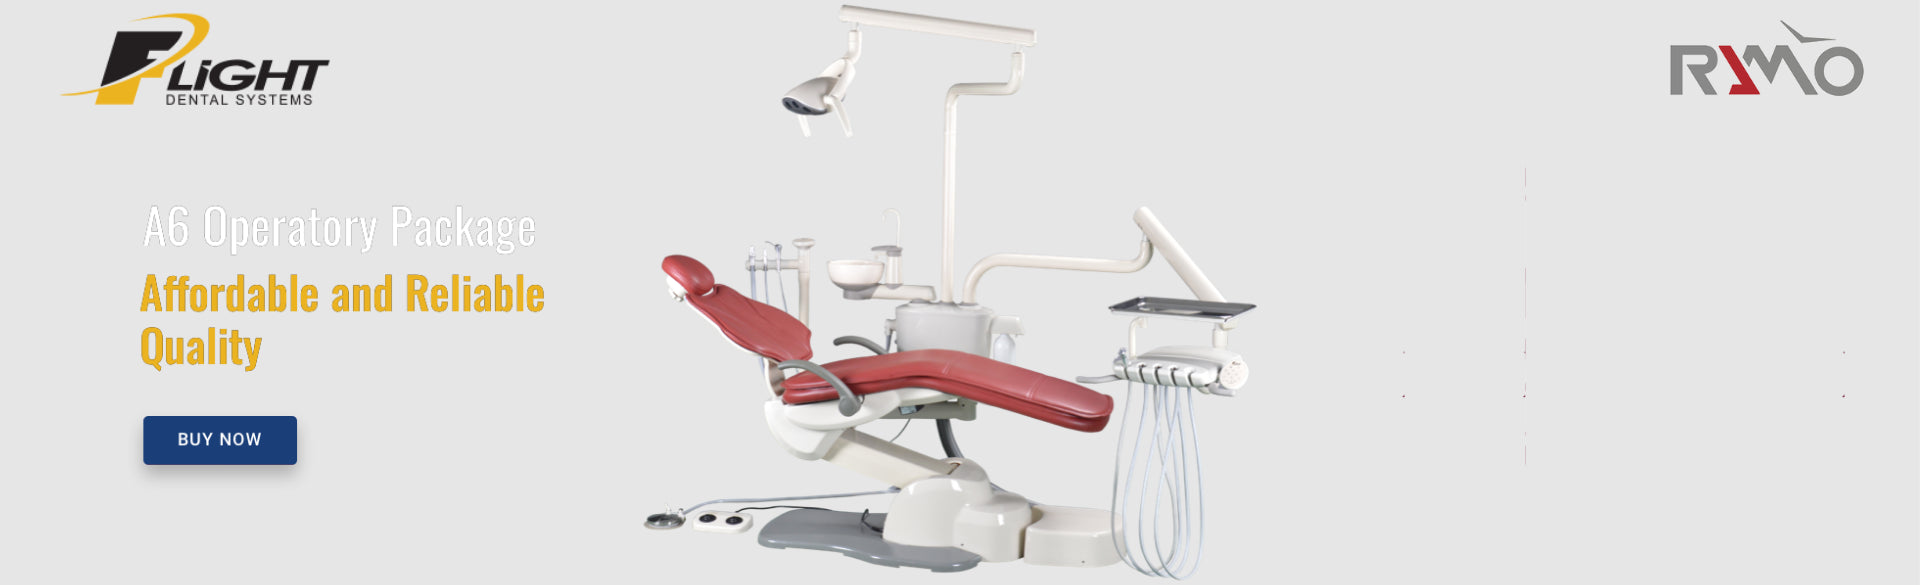 Flight Dental Systems Operatory